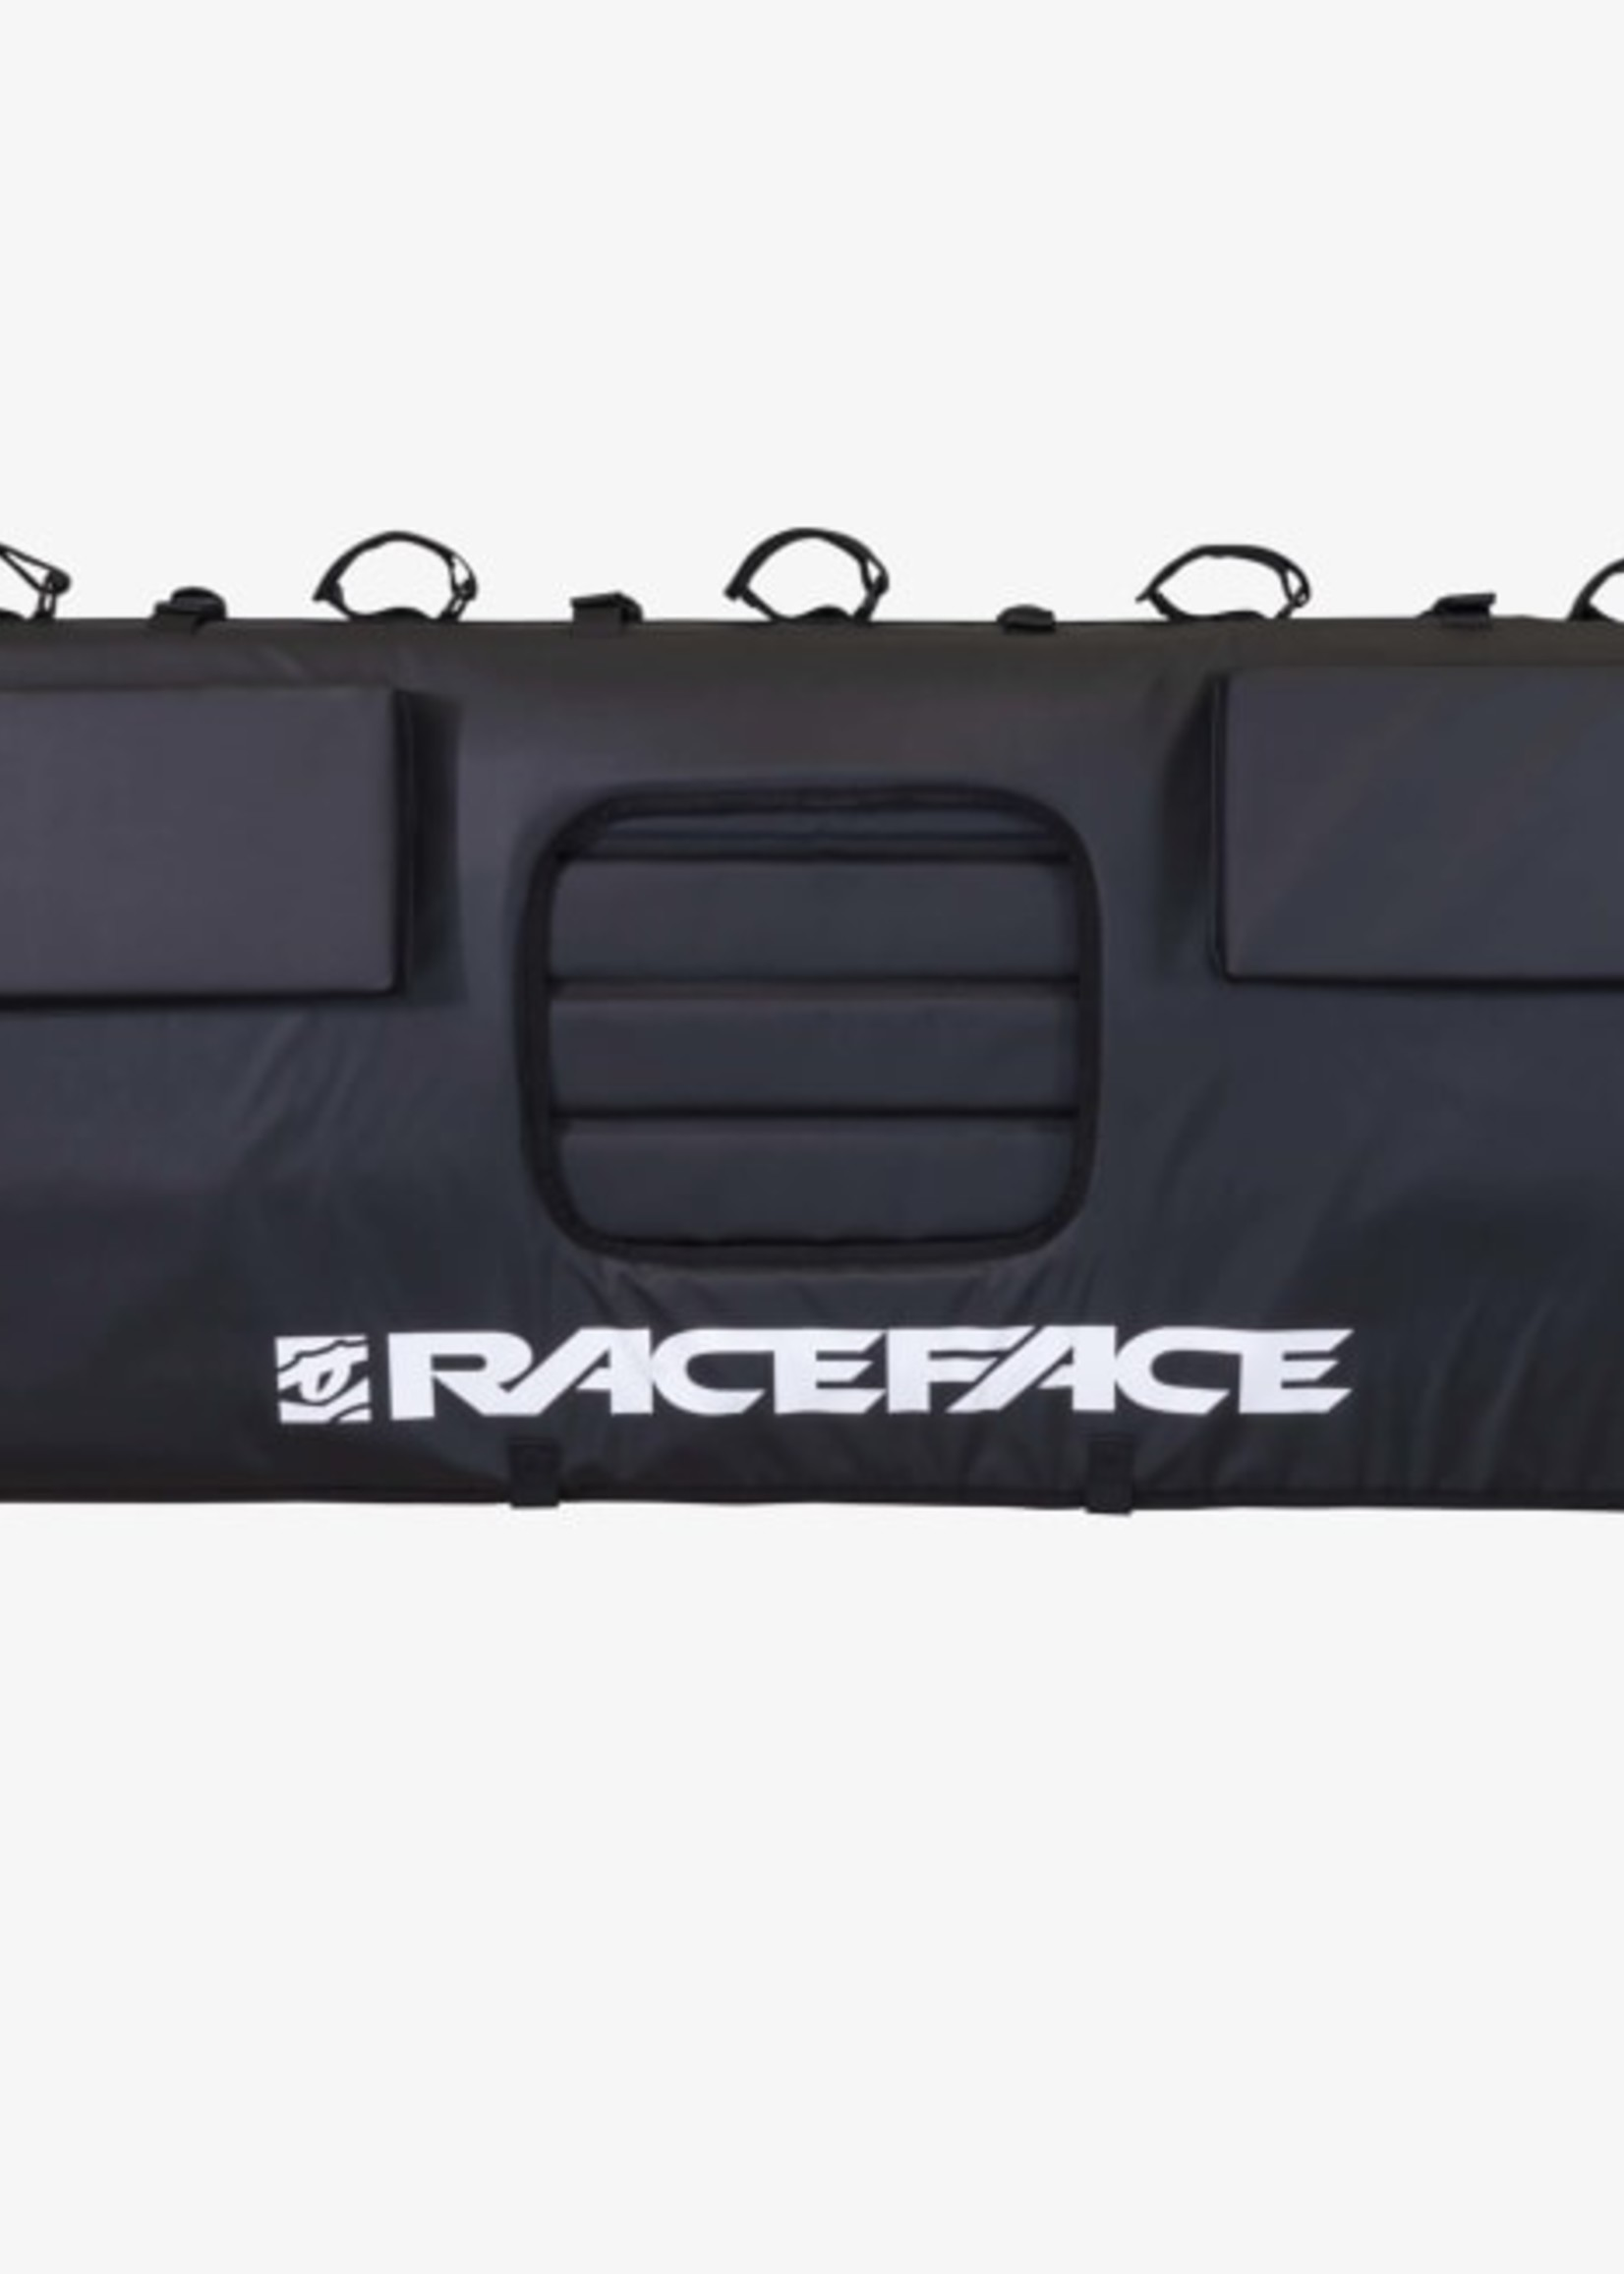 Raceface T2 Tailgate Pads